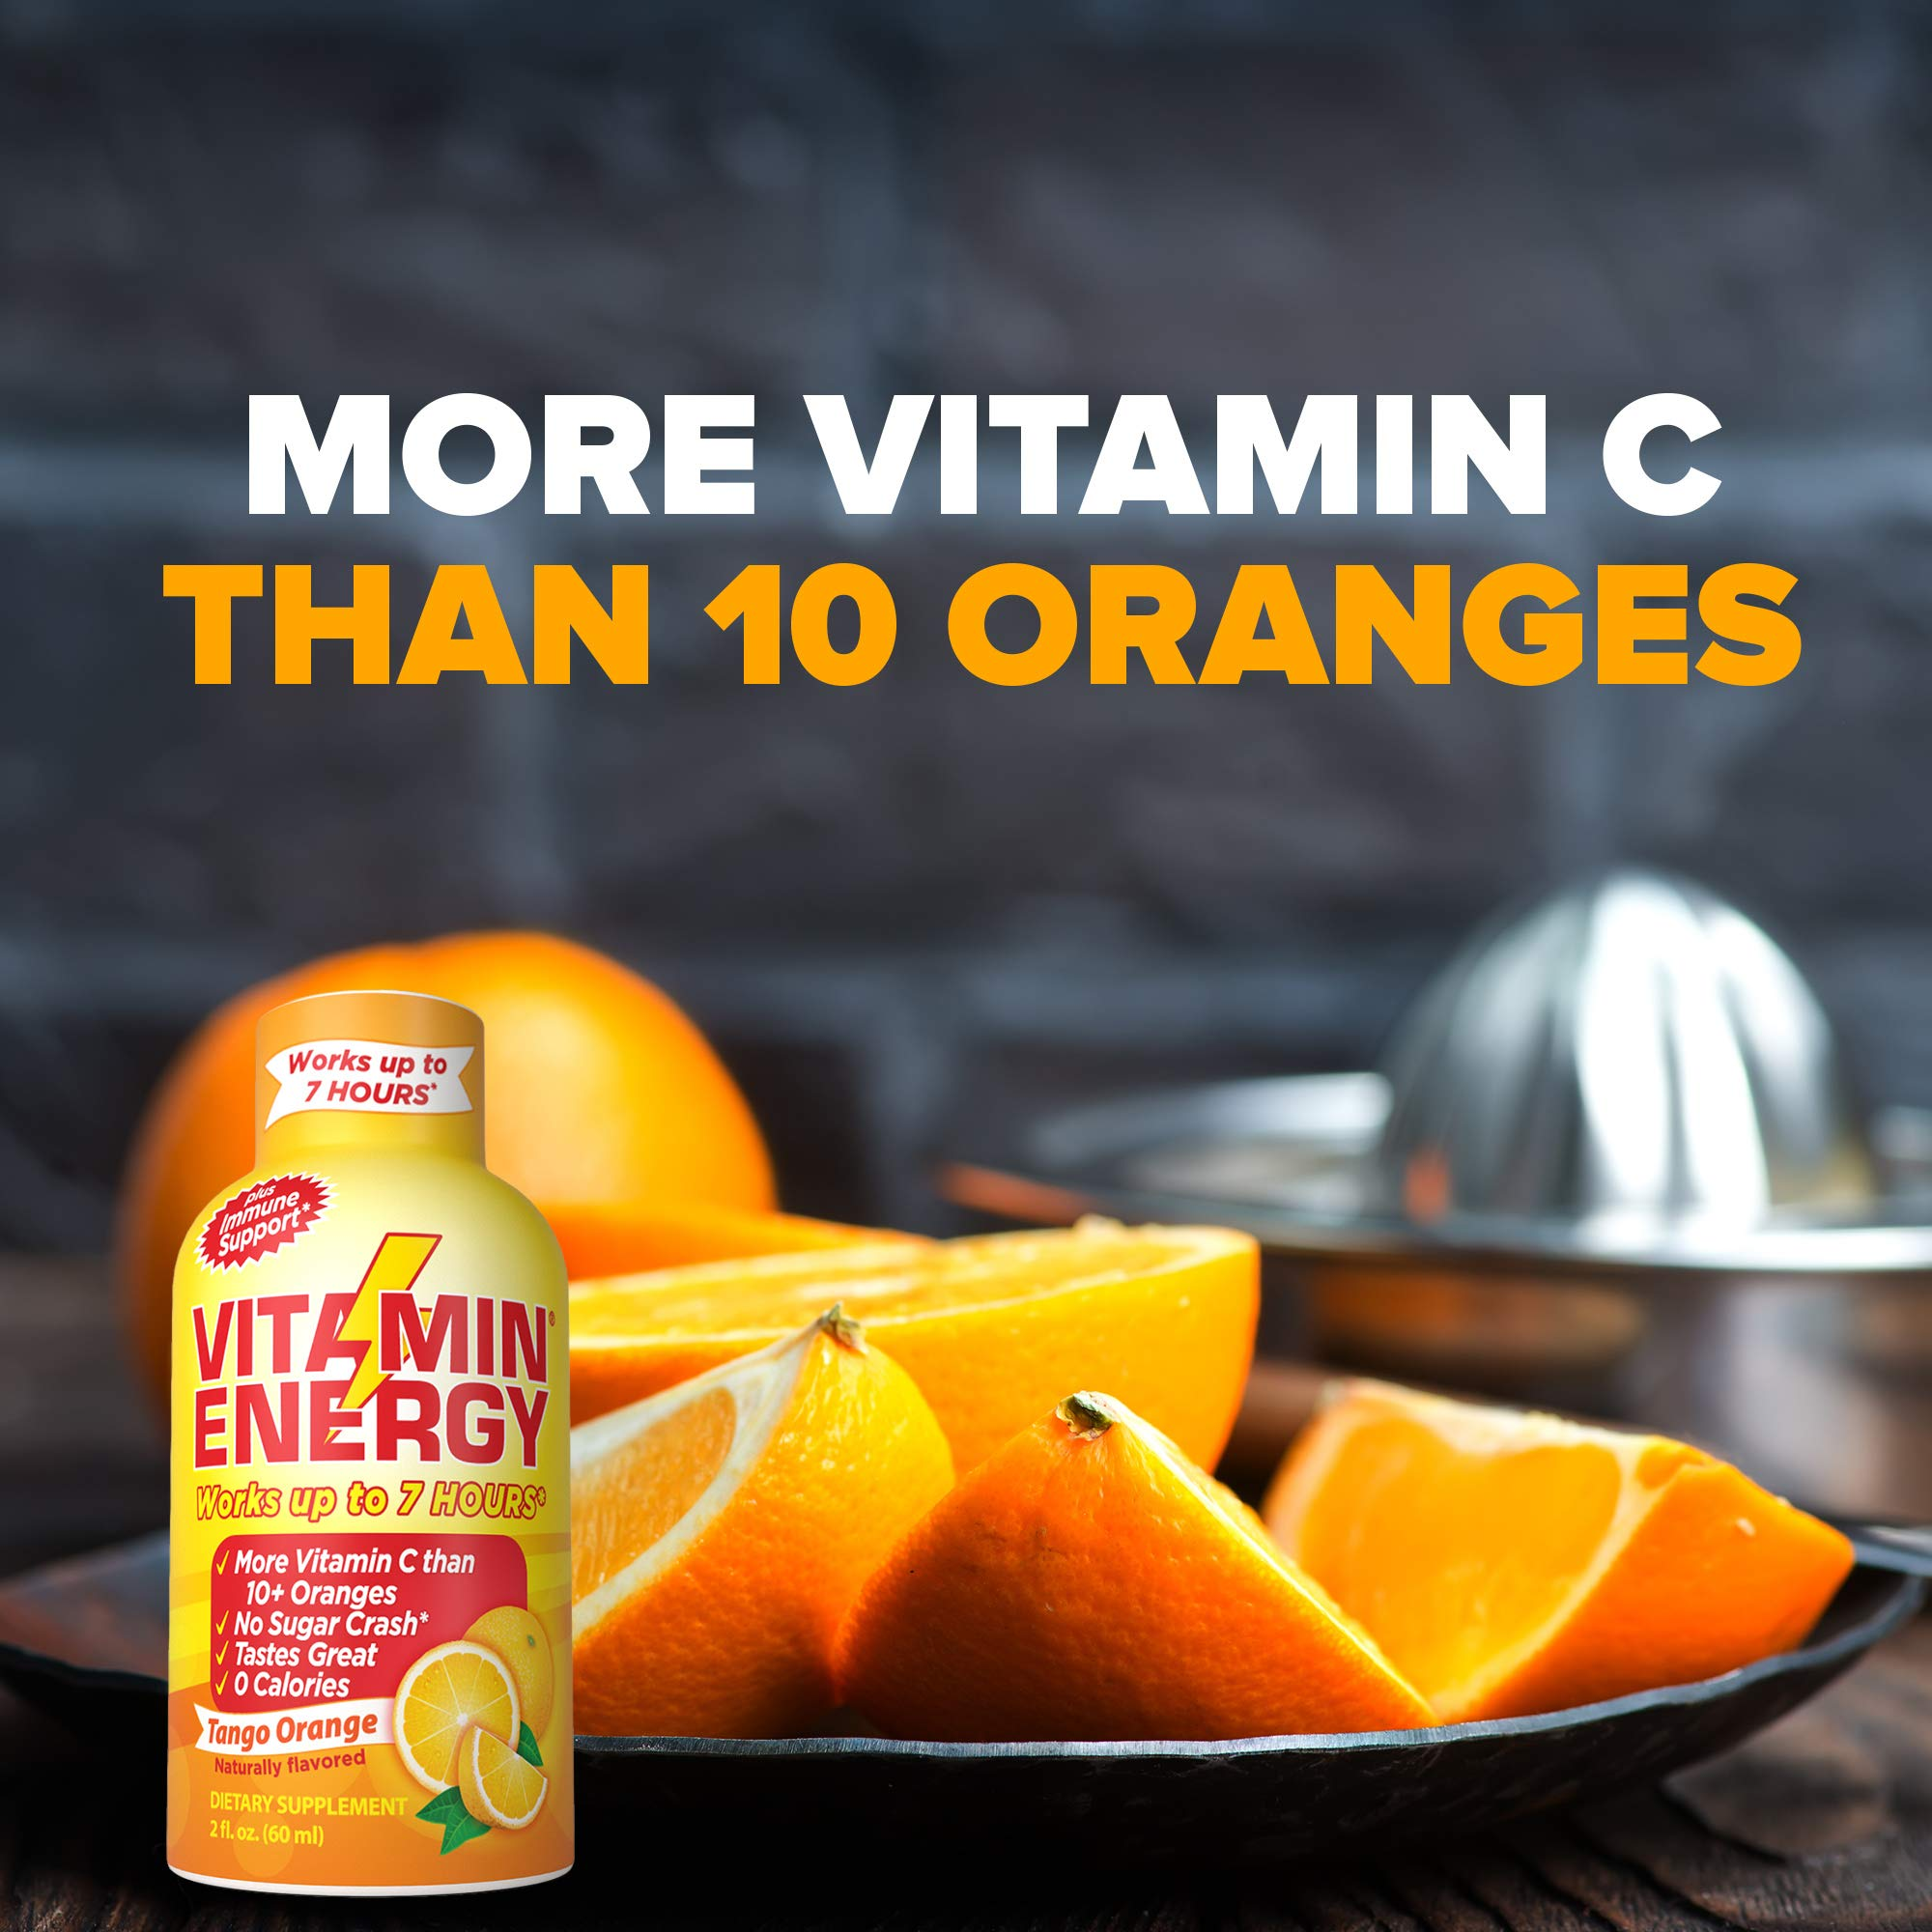 Vitamin Energy Shots – up to 7 Hours of Energy, More Vitamin C Than 10 Oranges, 0 Calories (48 Count) by Vitamin Energy (Image #7)